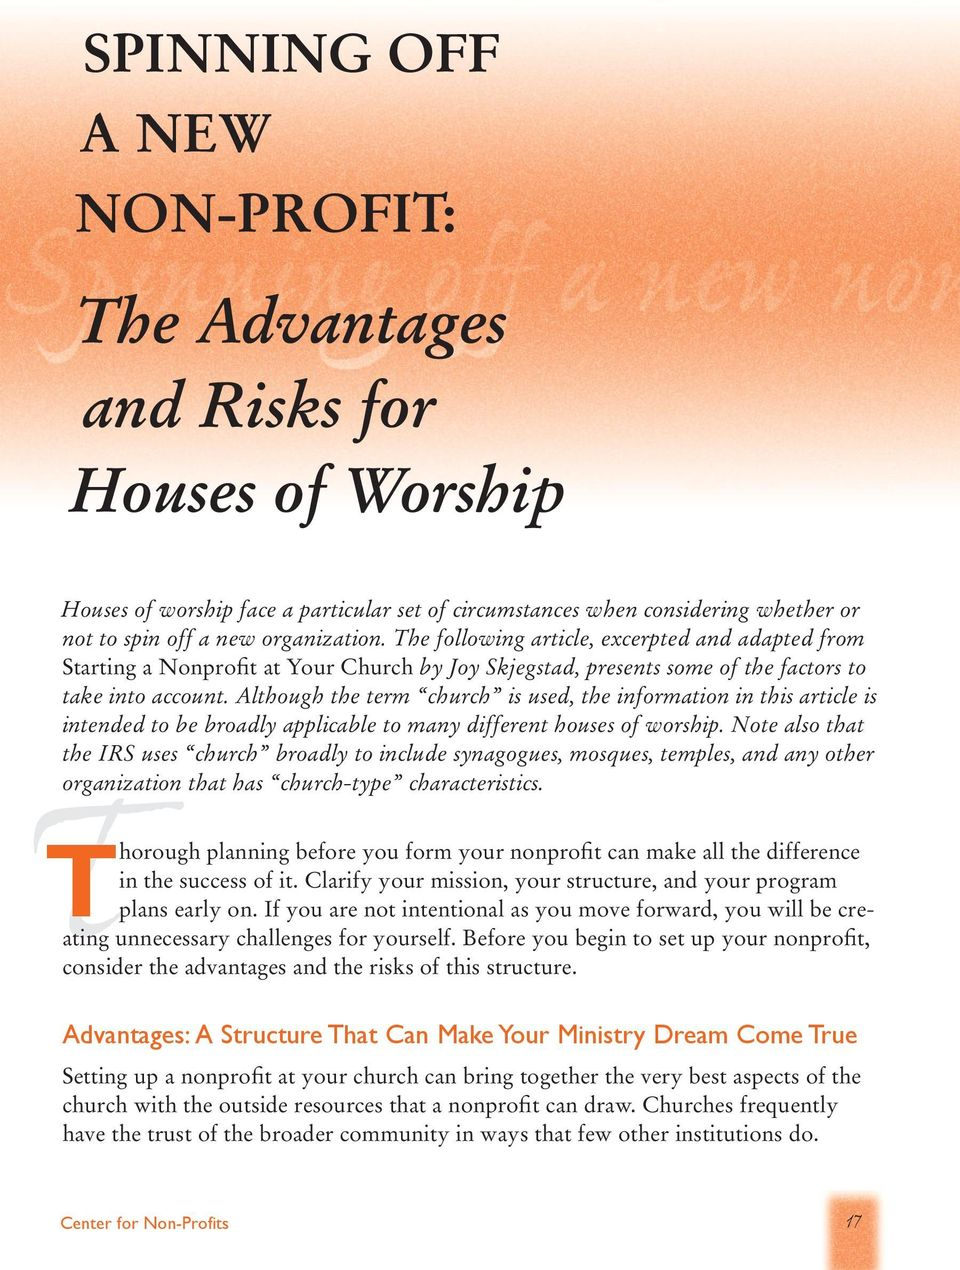 Although the term church is used, the information in this article is intended to be broadly applicable to many different houses of worship.